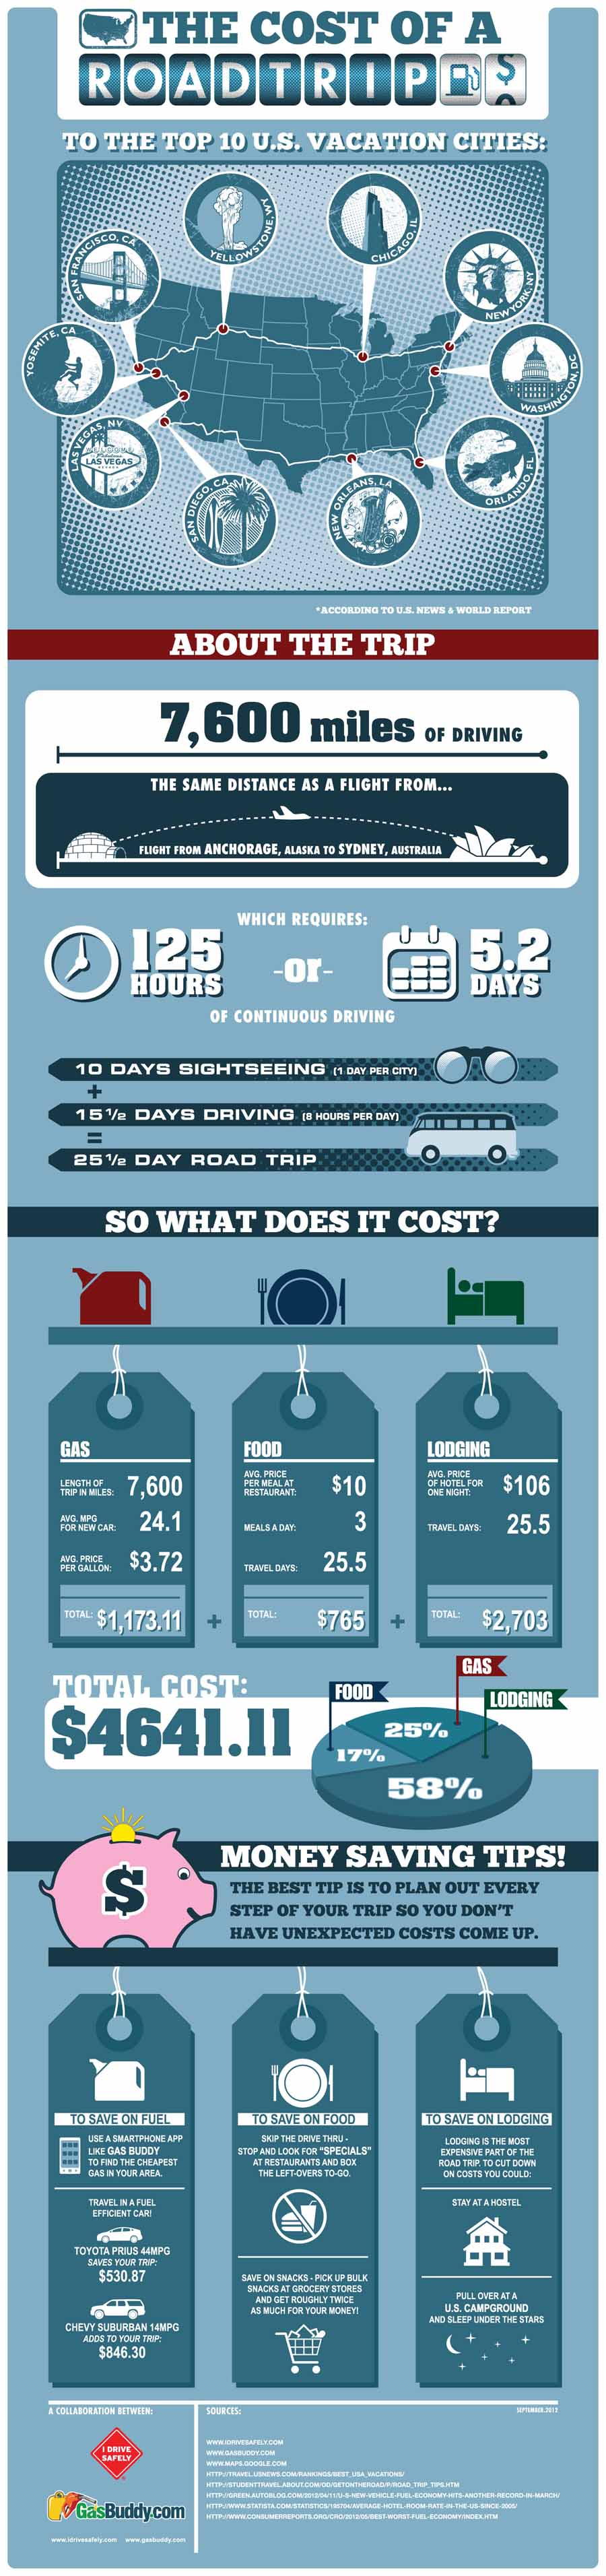 The cost of a road trip to the 10 US cities